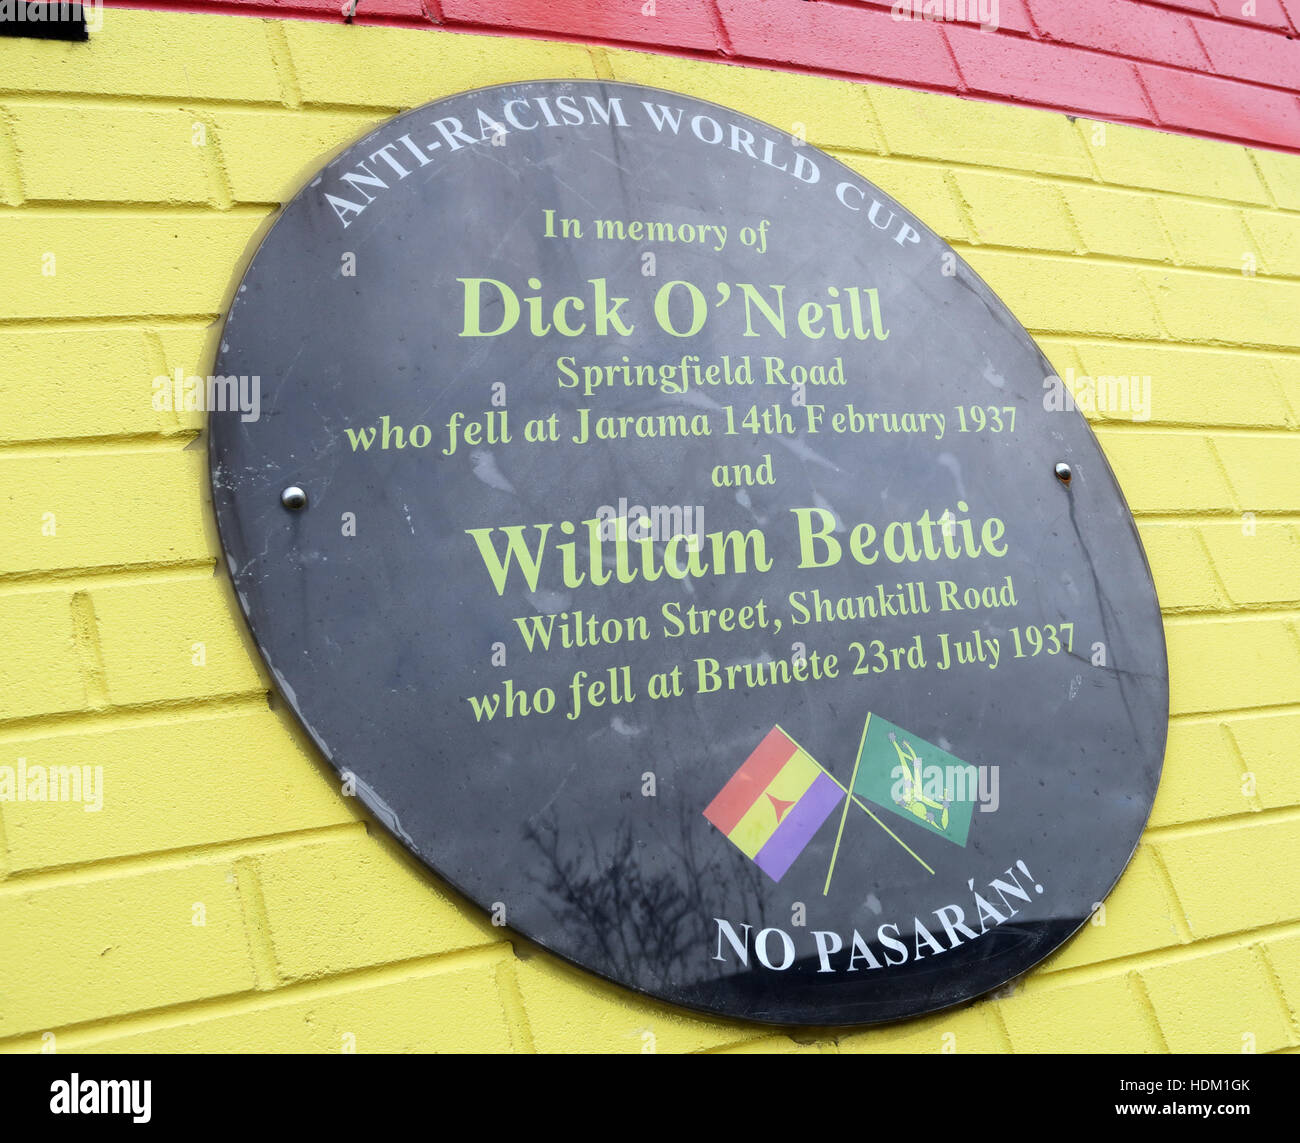 William Beattie,Springfield Road,&,Wilton Street,Shankill Road,plaque,fell,at,Brnete,23rd,July,1937,No Pasaran,GoTonySmith,@HotpixUK,Tony,Smith,UK,GB,Great,Britain,United,Kingdom,Irish,British,Ireland,problem,with,problem with,issue with,NI,Northern,Northern Ireland,Belfast,City,Centre,Art,Artists,the,troubles,The Troubles,Good Friday Agreement,Peace,honour,painting,wall,walls,tribute,republicanism,Fight,Justice,West,Beal,feirste,martyrs,social,tour,tourism,tourists,urban,six,counties,6,backdrop,county,Antrim,occupation,good,Friday,agreement,peace,reconciliation,IRA,terror,terrorists,genocide,Buy Pictures of,Buy Images Of,Images of,Stock Images,Tony Smith,United Kingdom,Great Britain,British Isles,republican cause